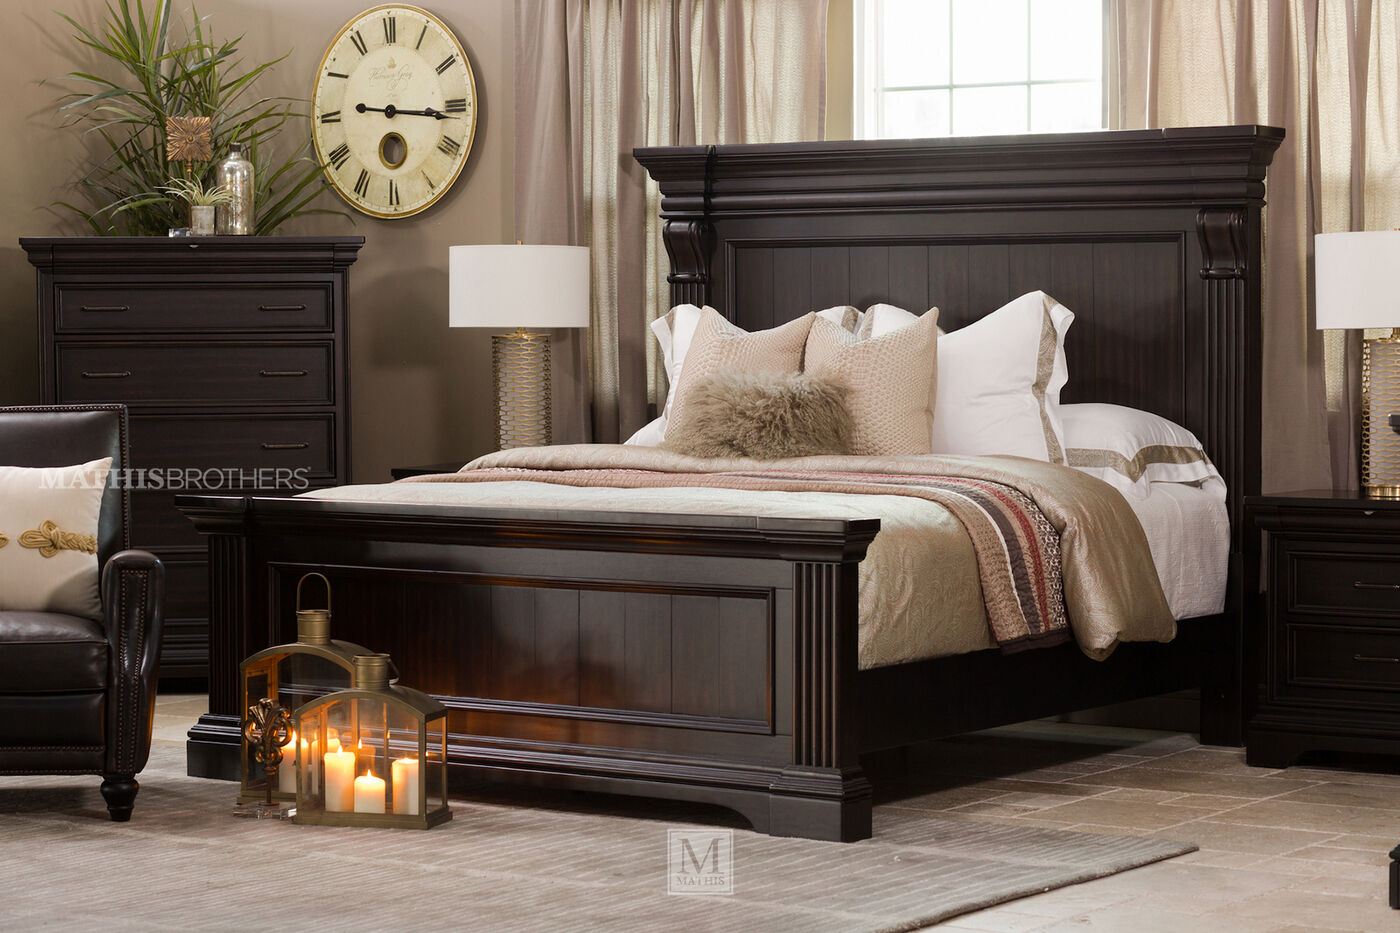 70 Traditional Distressed Panel Bed In Black Mathis Brothers Furniture